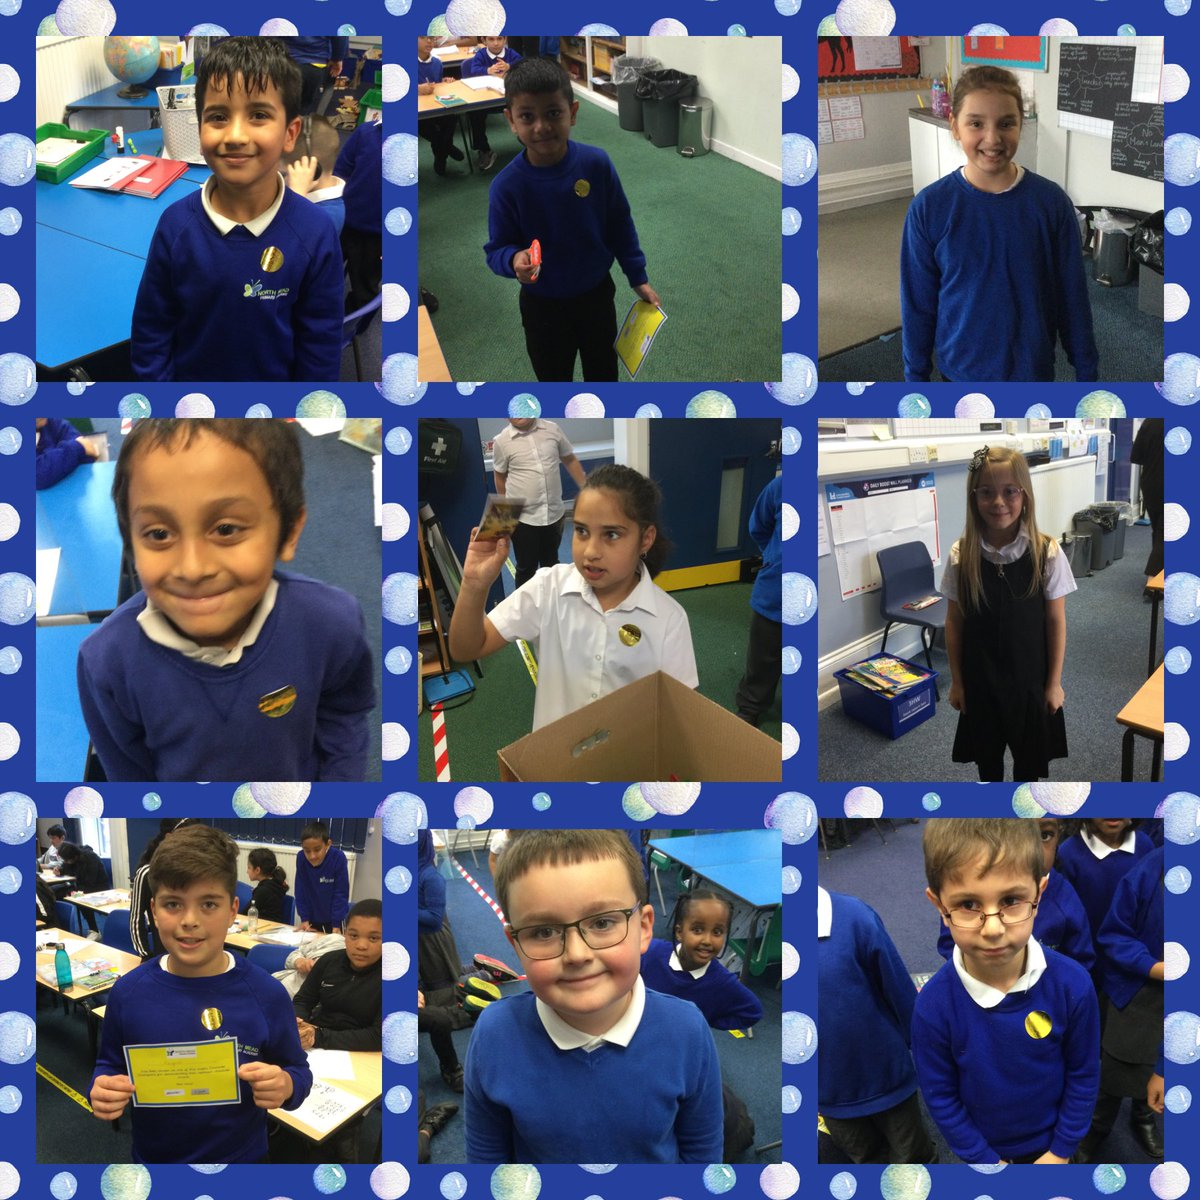 #TeamNorthMead 💙 are very proud of this week's Character Champions for demonstrating their #optimism character muscles. 💙 #tmet https://t.co/I27U7h54IV